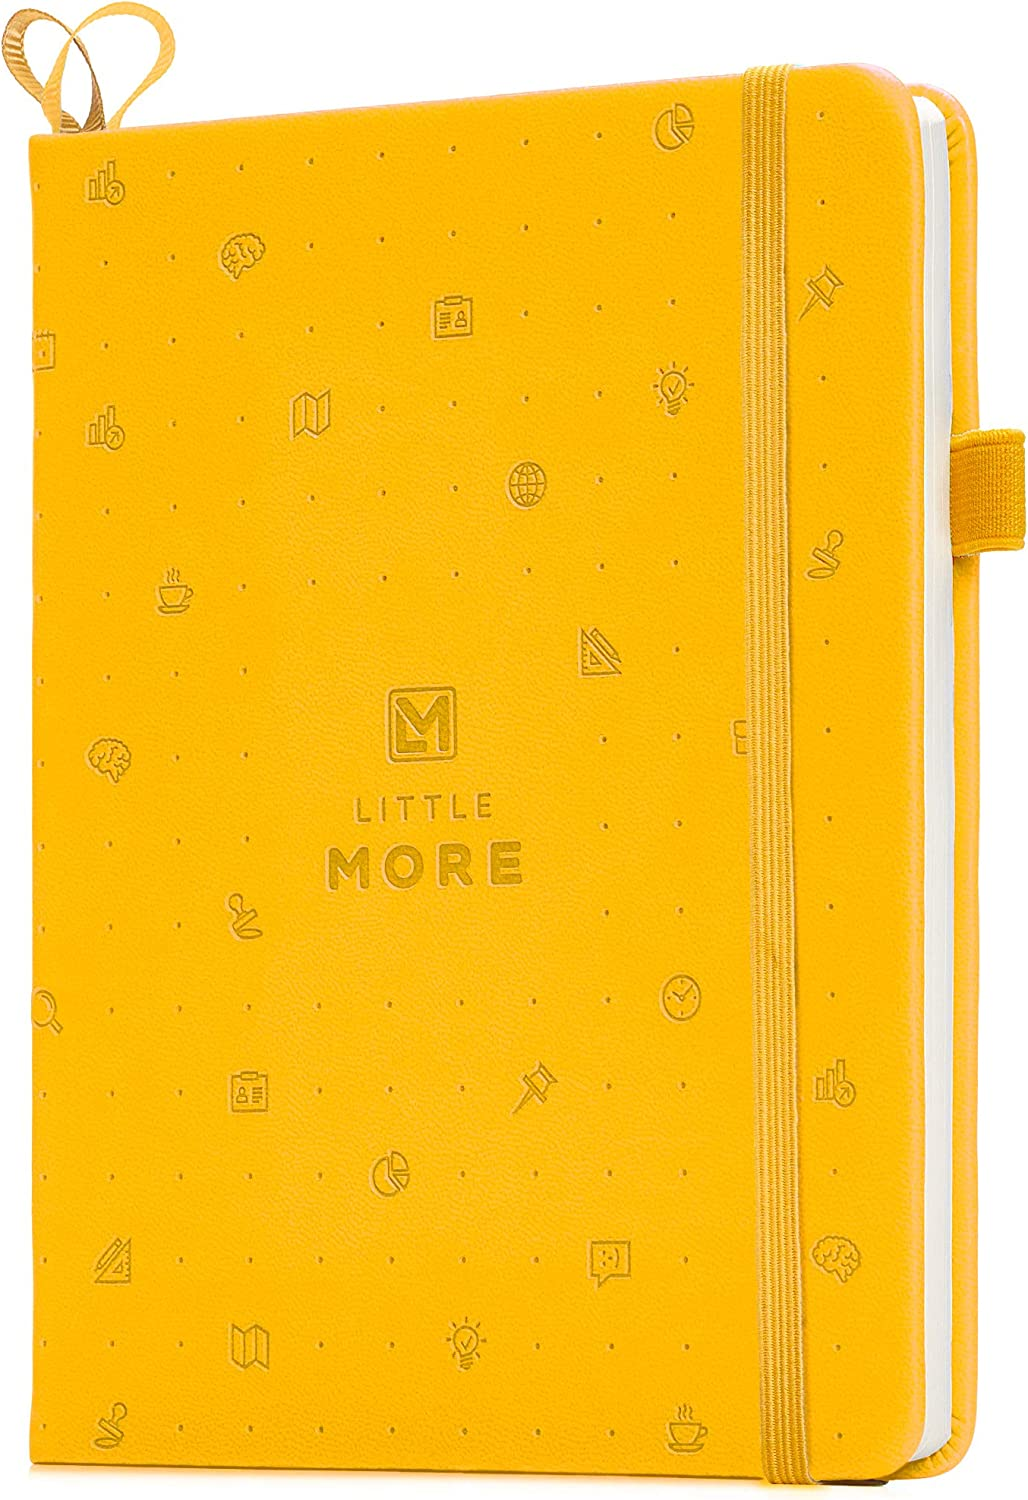 Little More Dot Grid Notebook - Dotted San Diego Mall Hardcove Journal Max 63% OFF